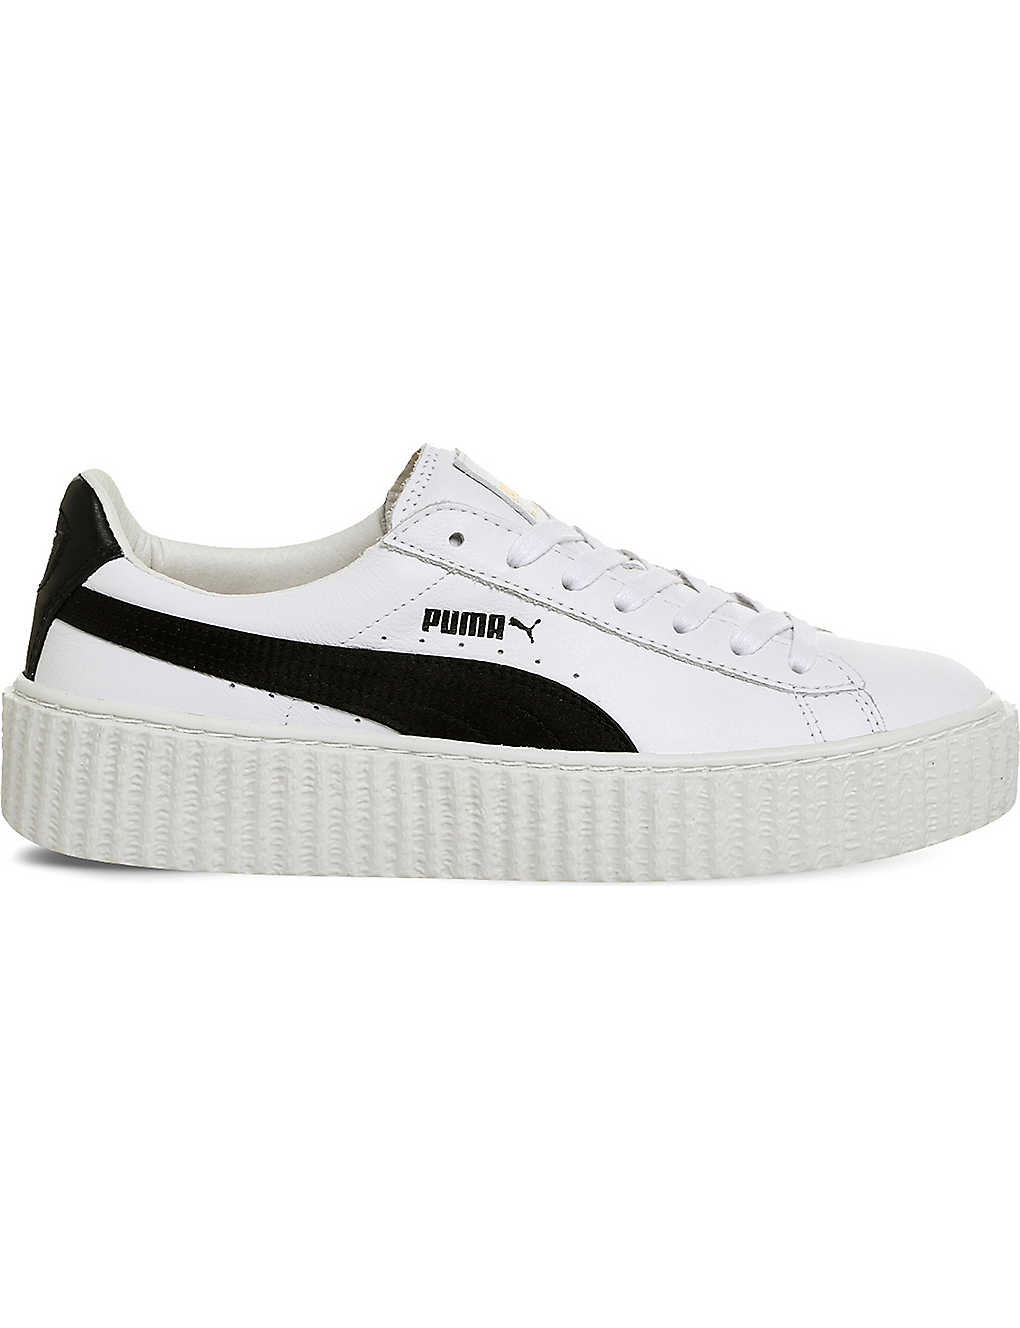 reputable site 38960 a612f PUMA - Basket Creeper leather trainers | Selfridges.com